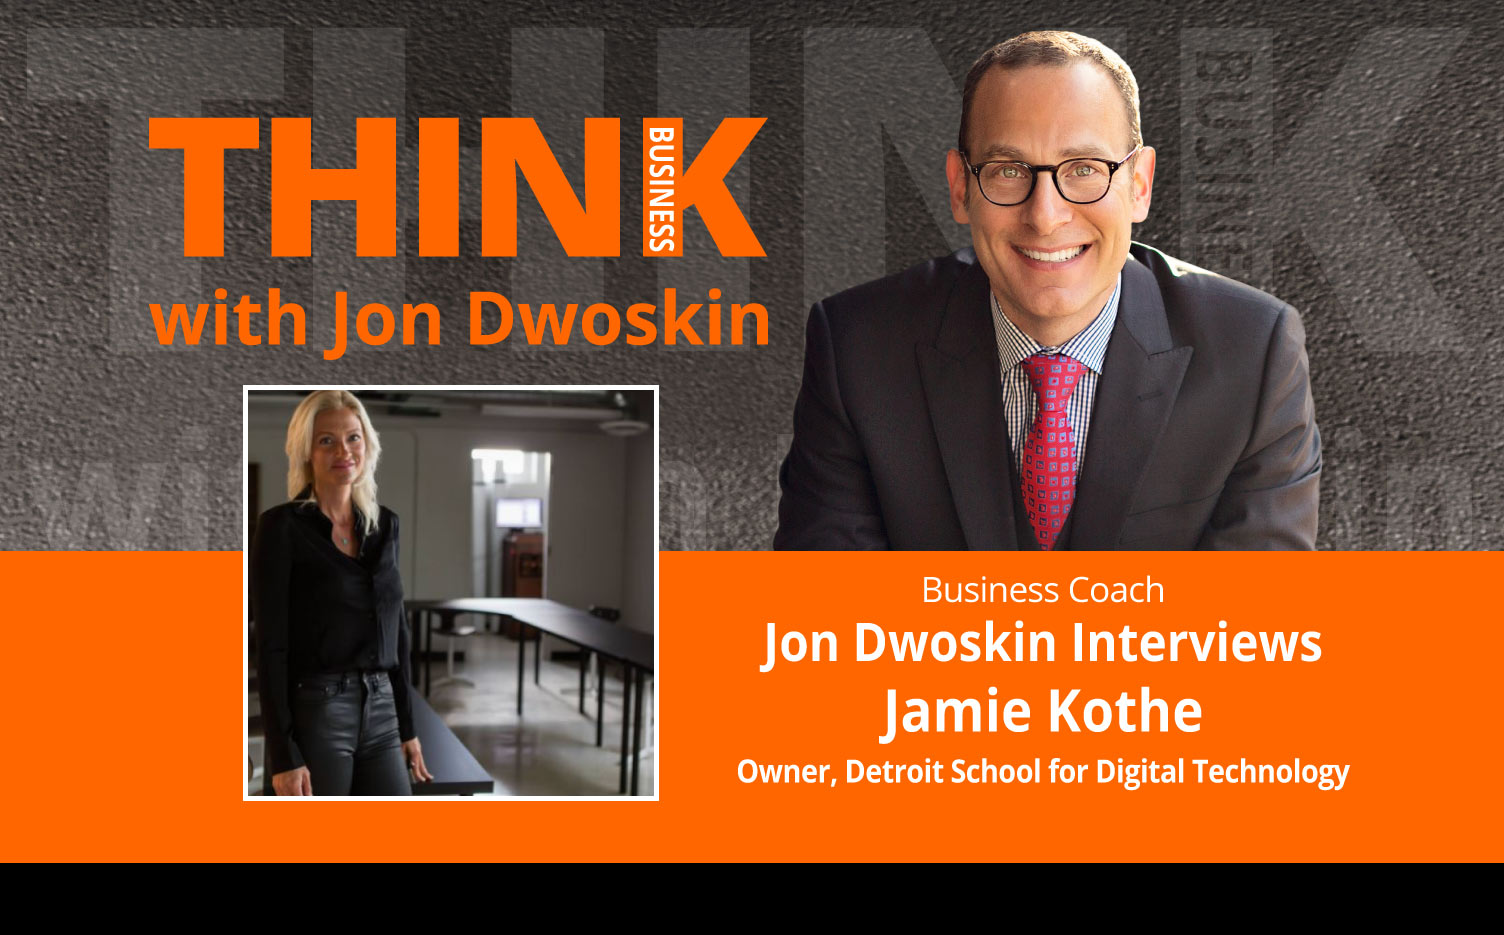 THINK Business Podcast: Jon Dwoskin Interviews Jamie Kothe, Owner, Detroit School for Digital Technology